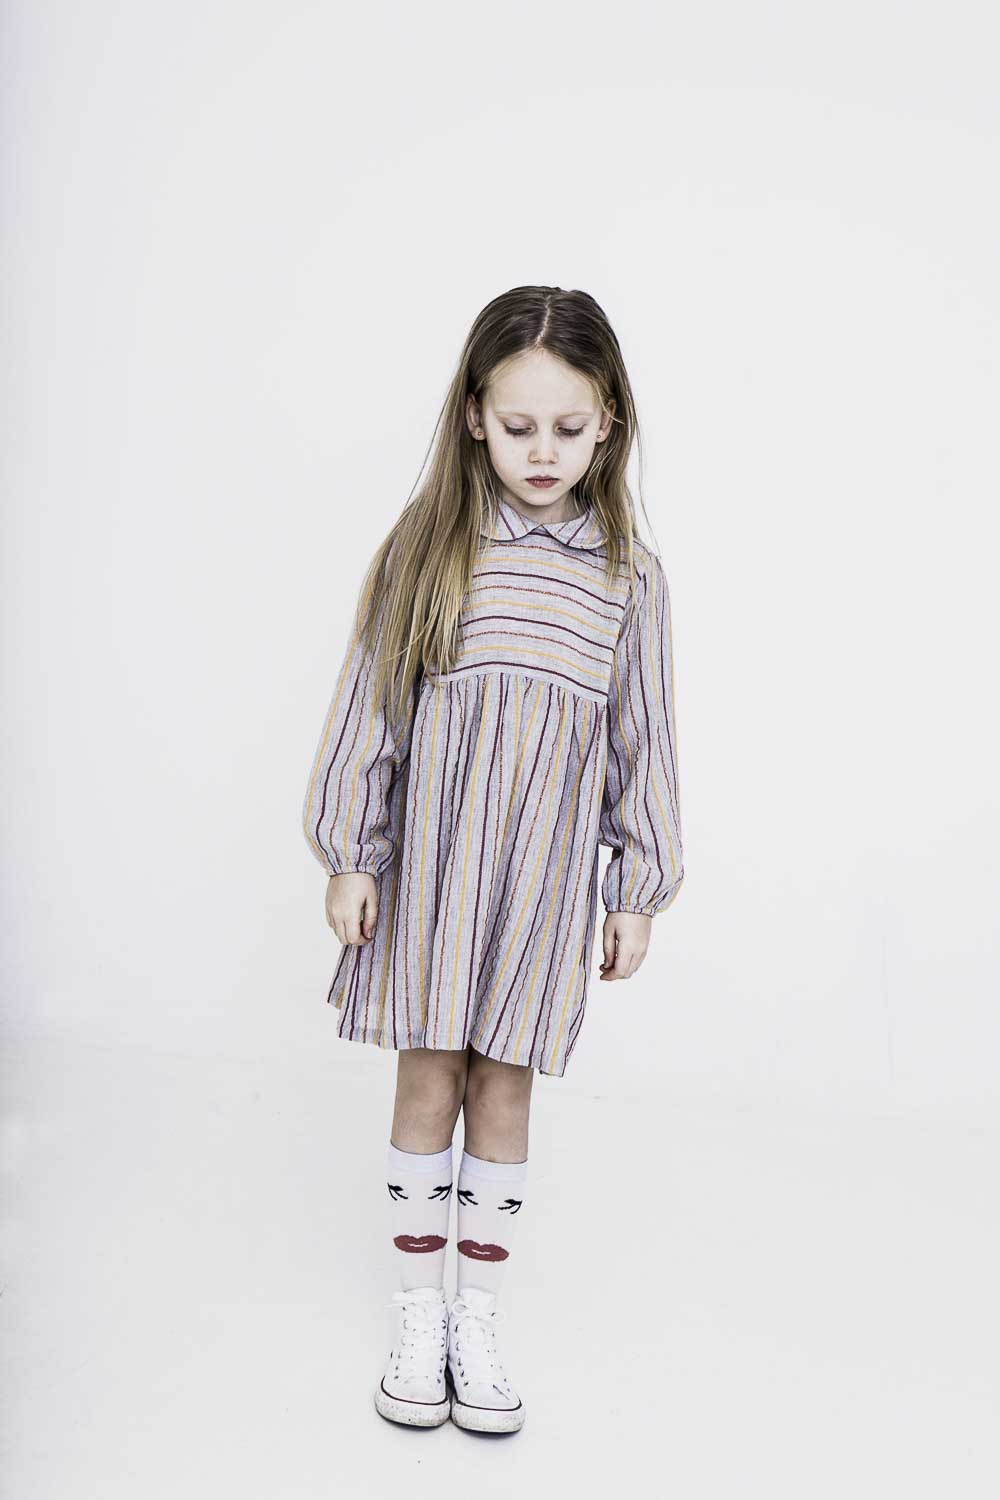 iglo-indi-winter-2017-2018-kidsfashion-trends-aw-kindermode-5